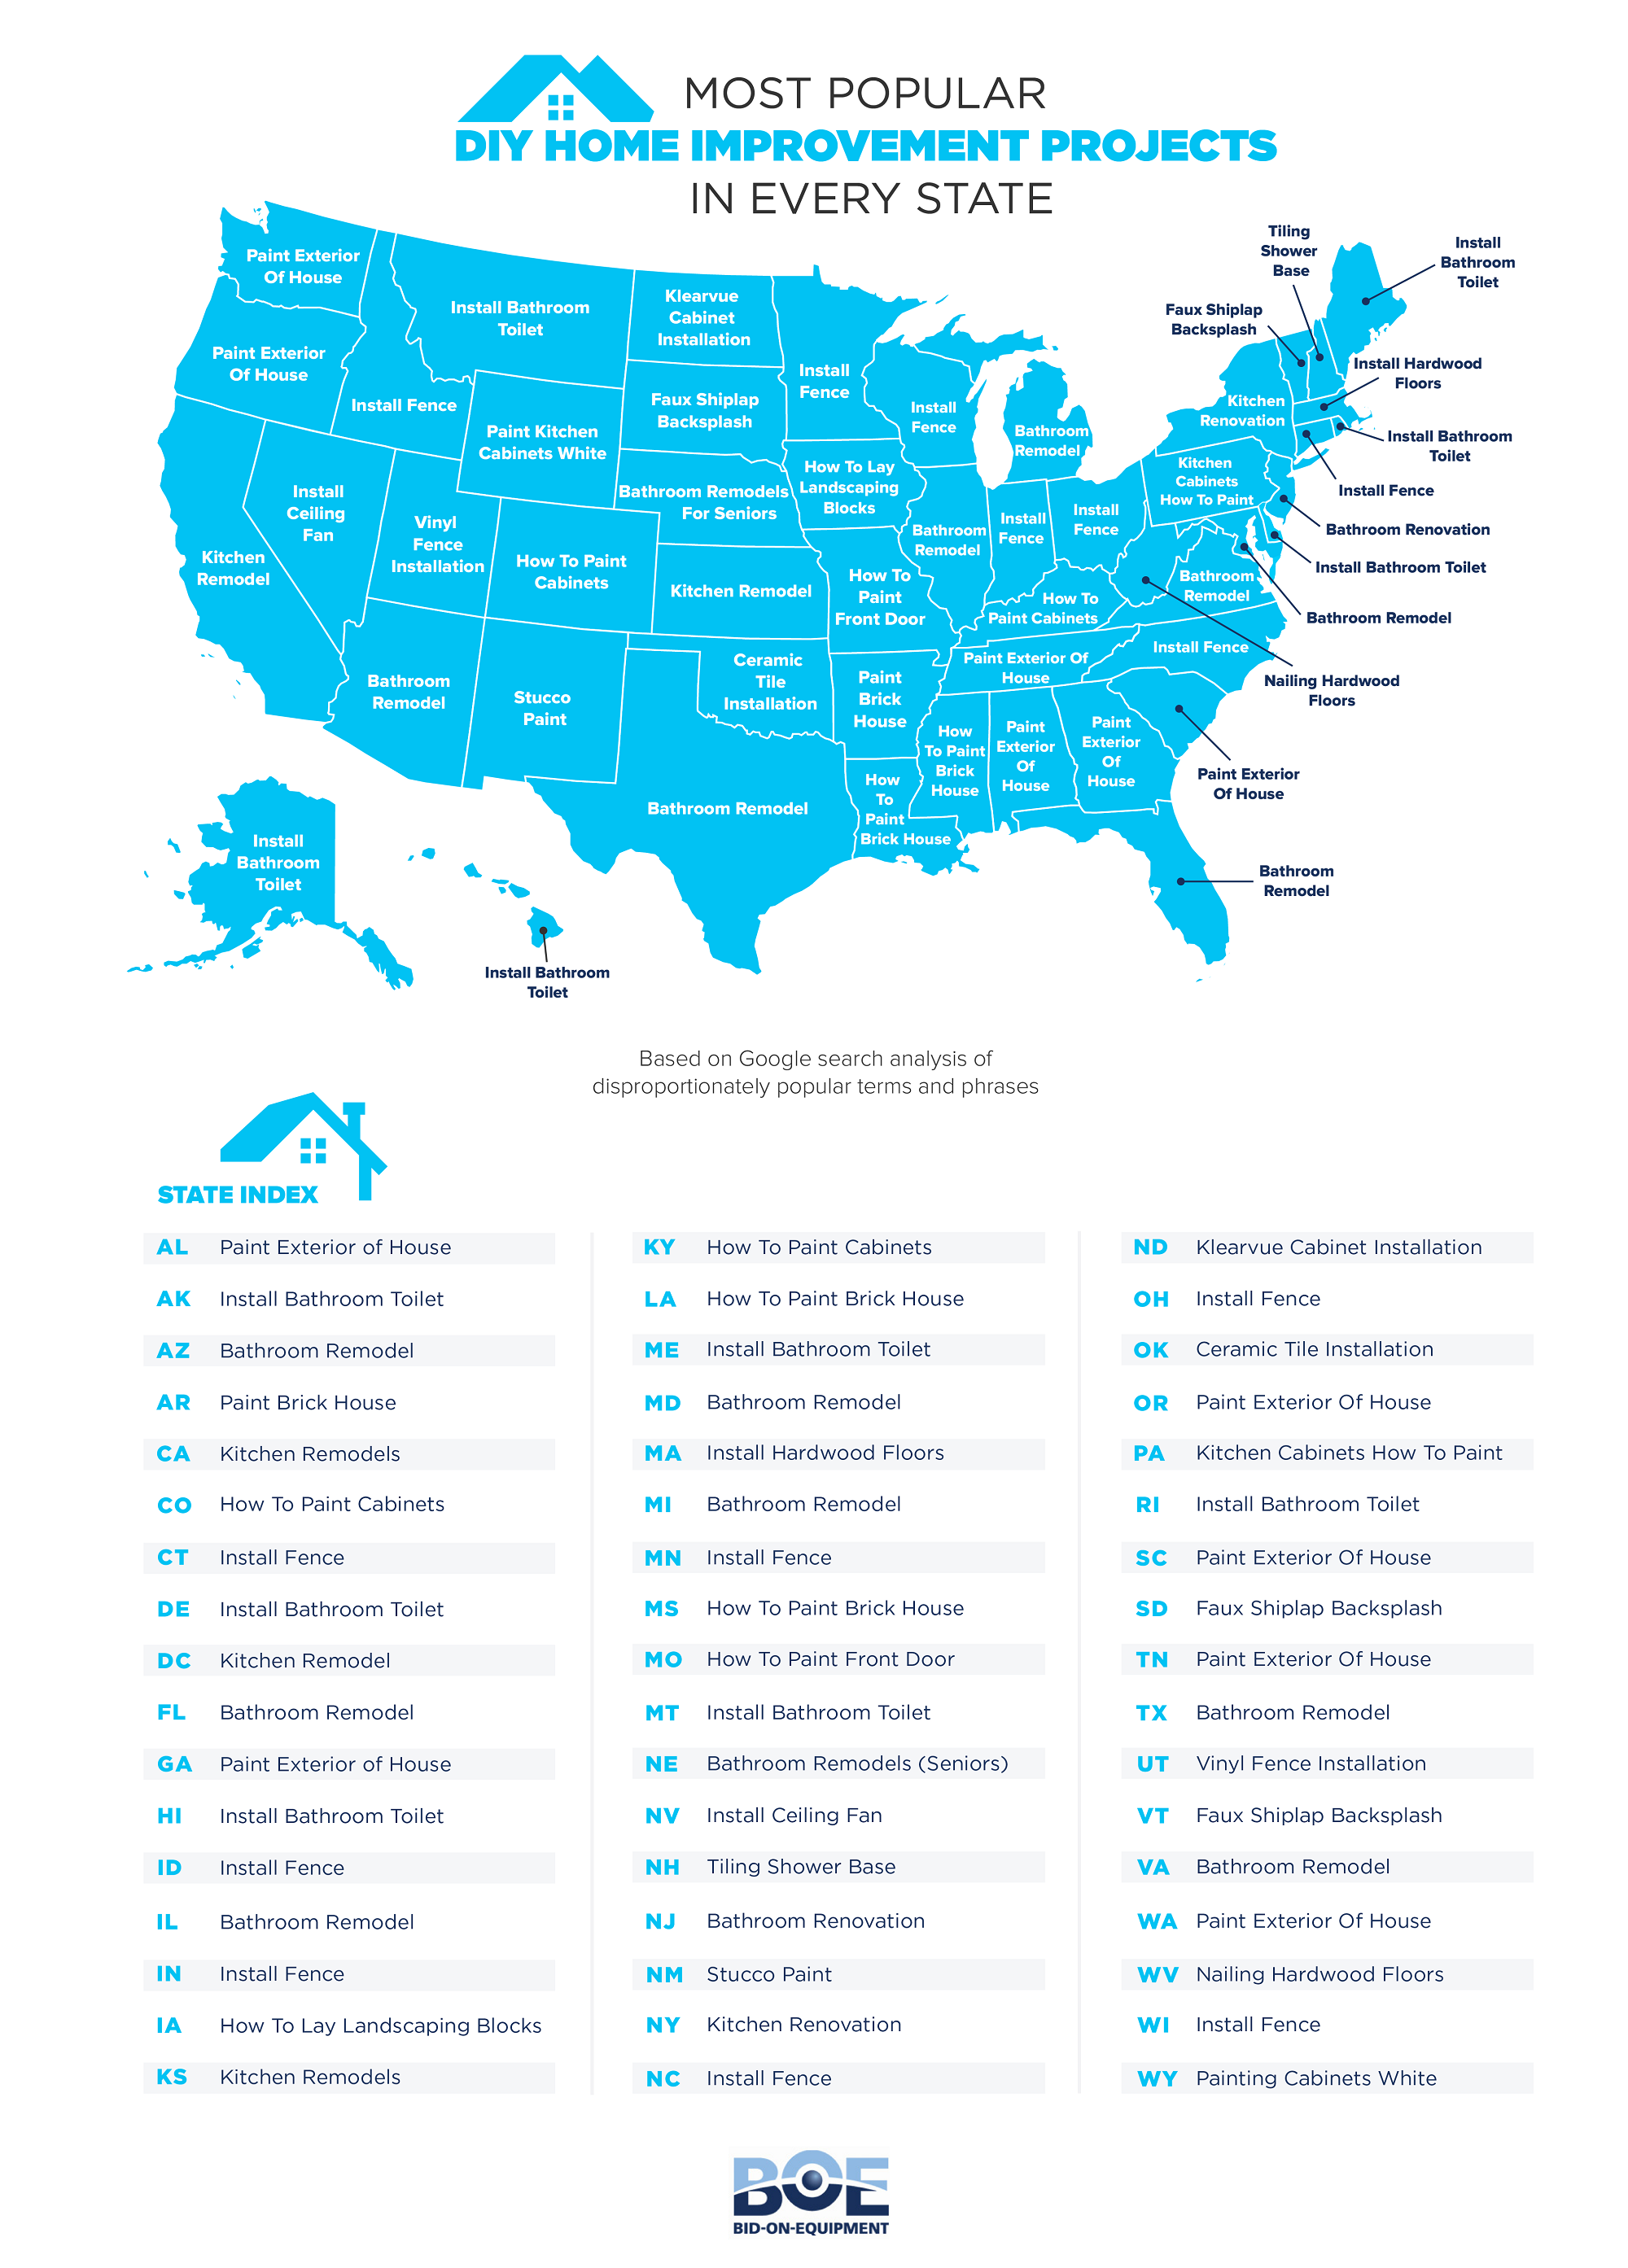 Most Popular DIY Home Improvement Projects in Every State